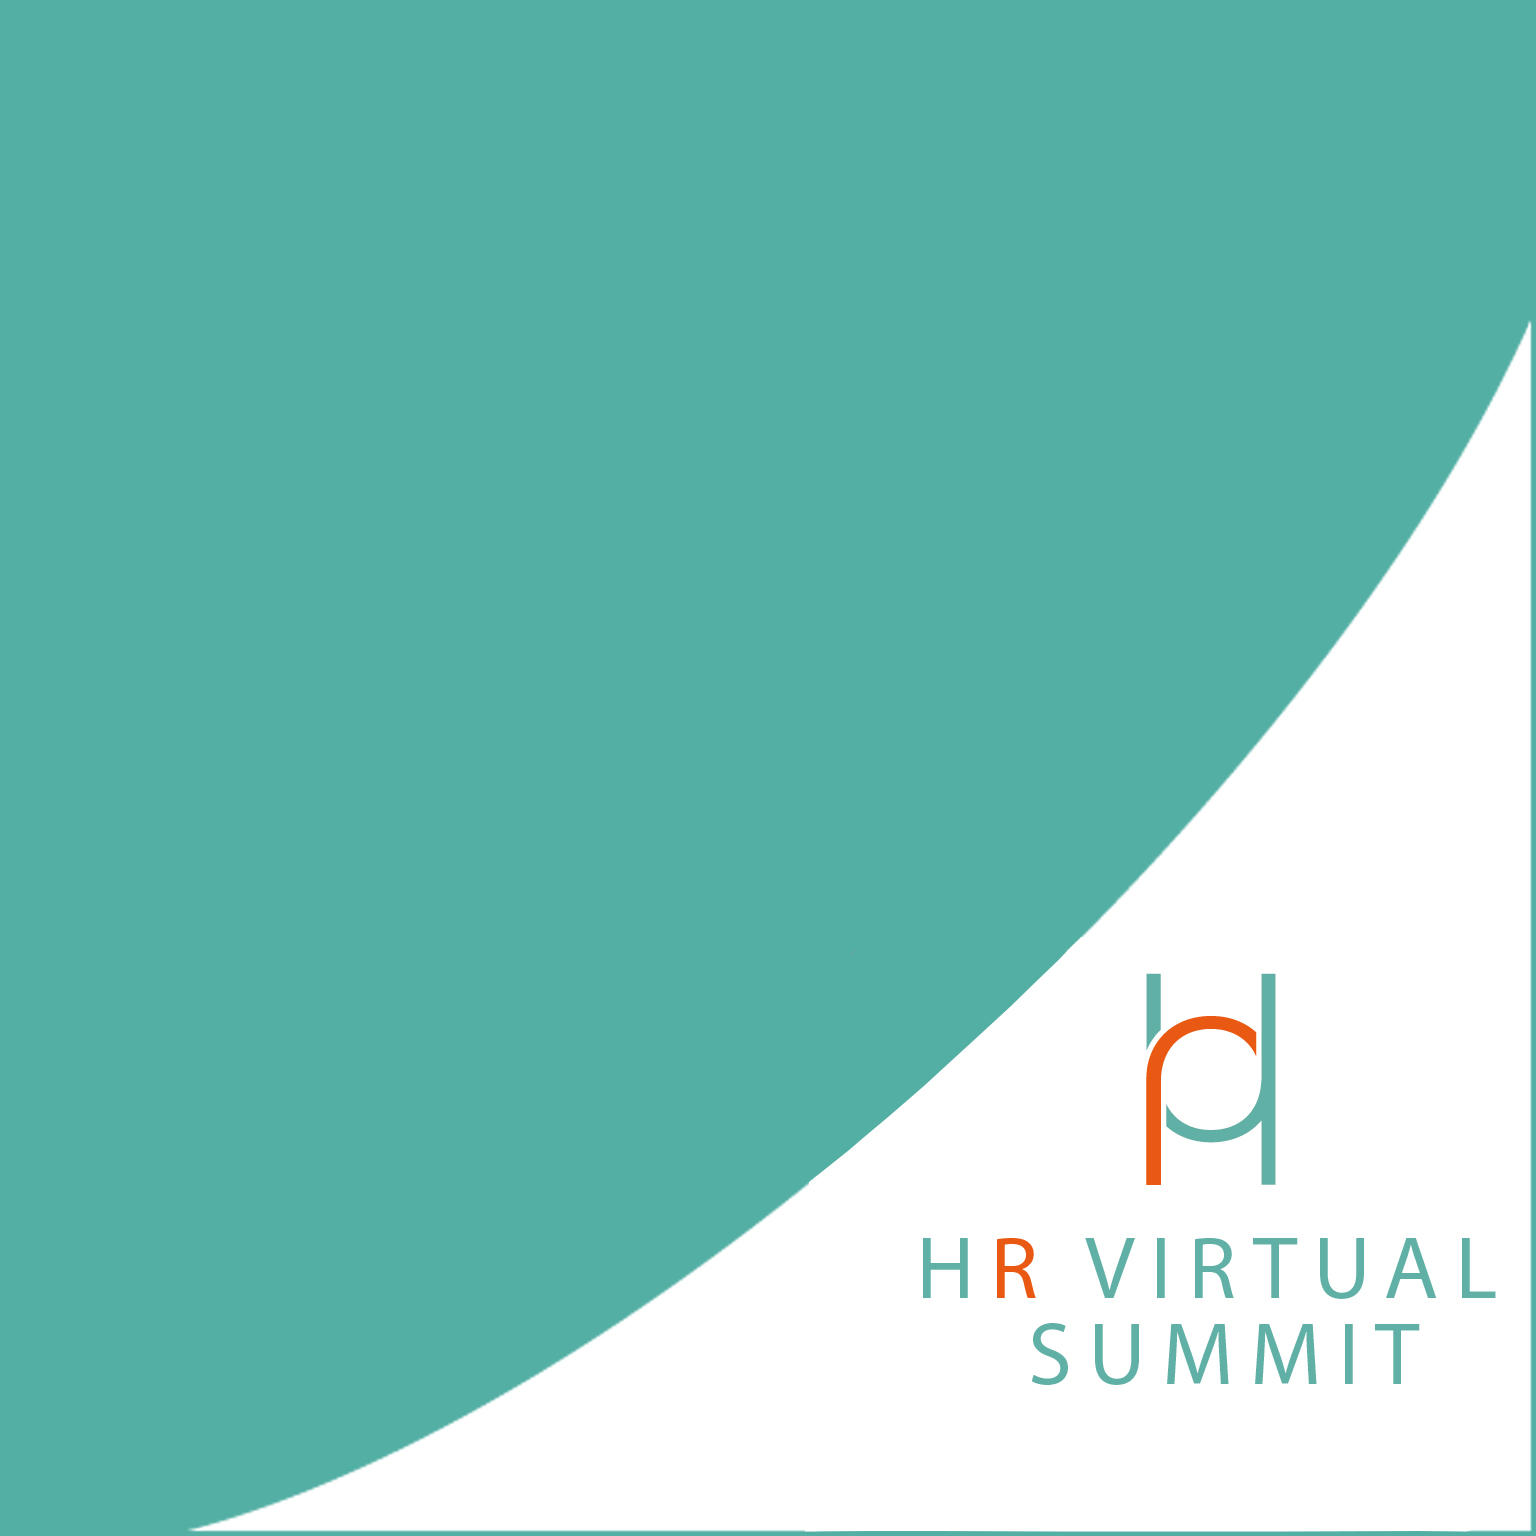 Virtual HR Summit (just use logo)